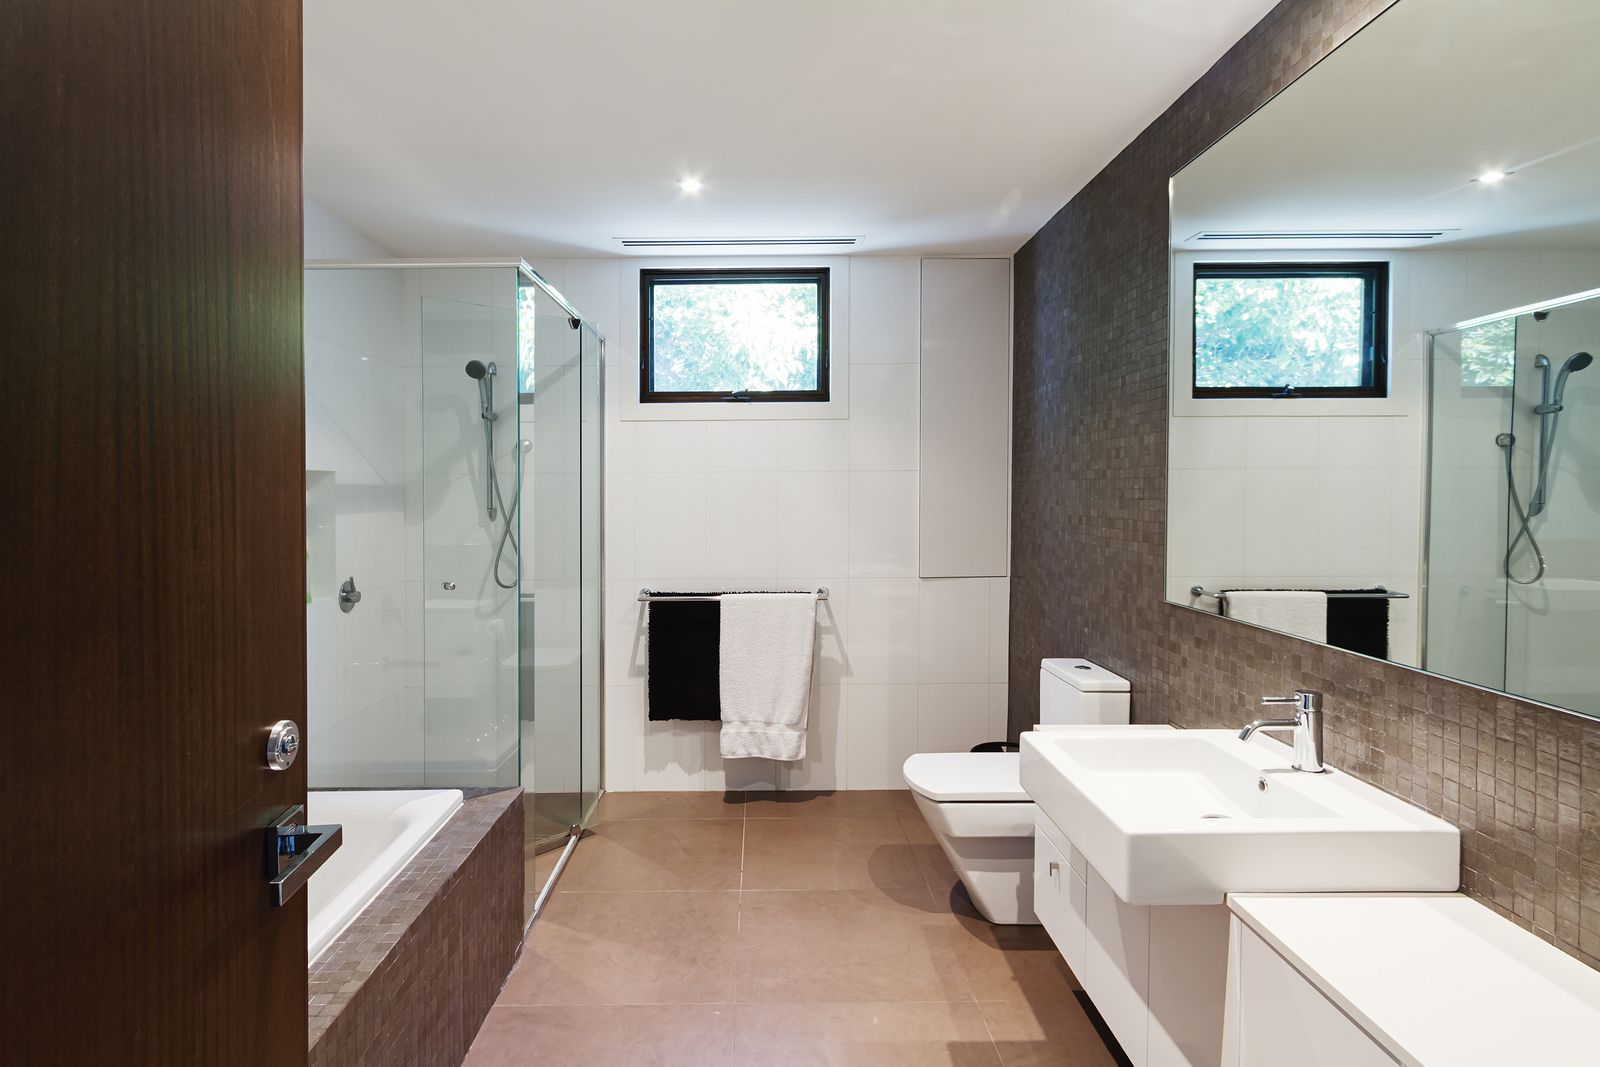 A Bathroom Renovation Can Increase The Value Of A Home Says Oxford Bathrooms Renovations S Bathroom Renovations Sydney Bathroom Renovations Bathroom Renovation